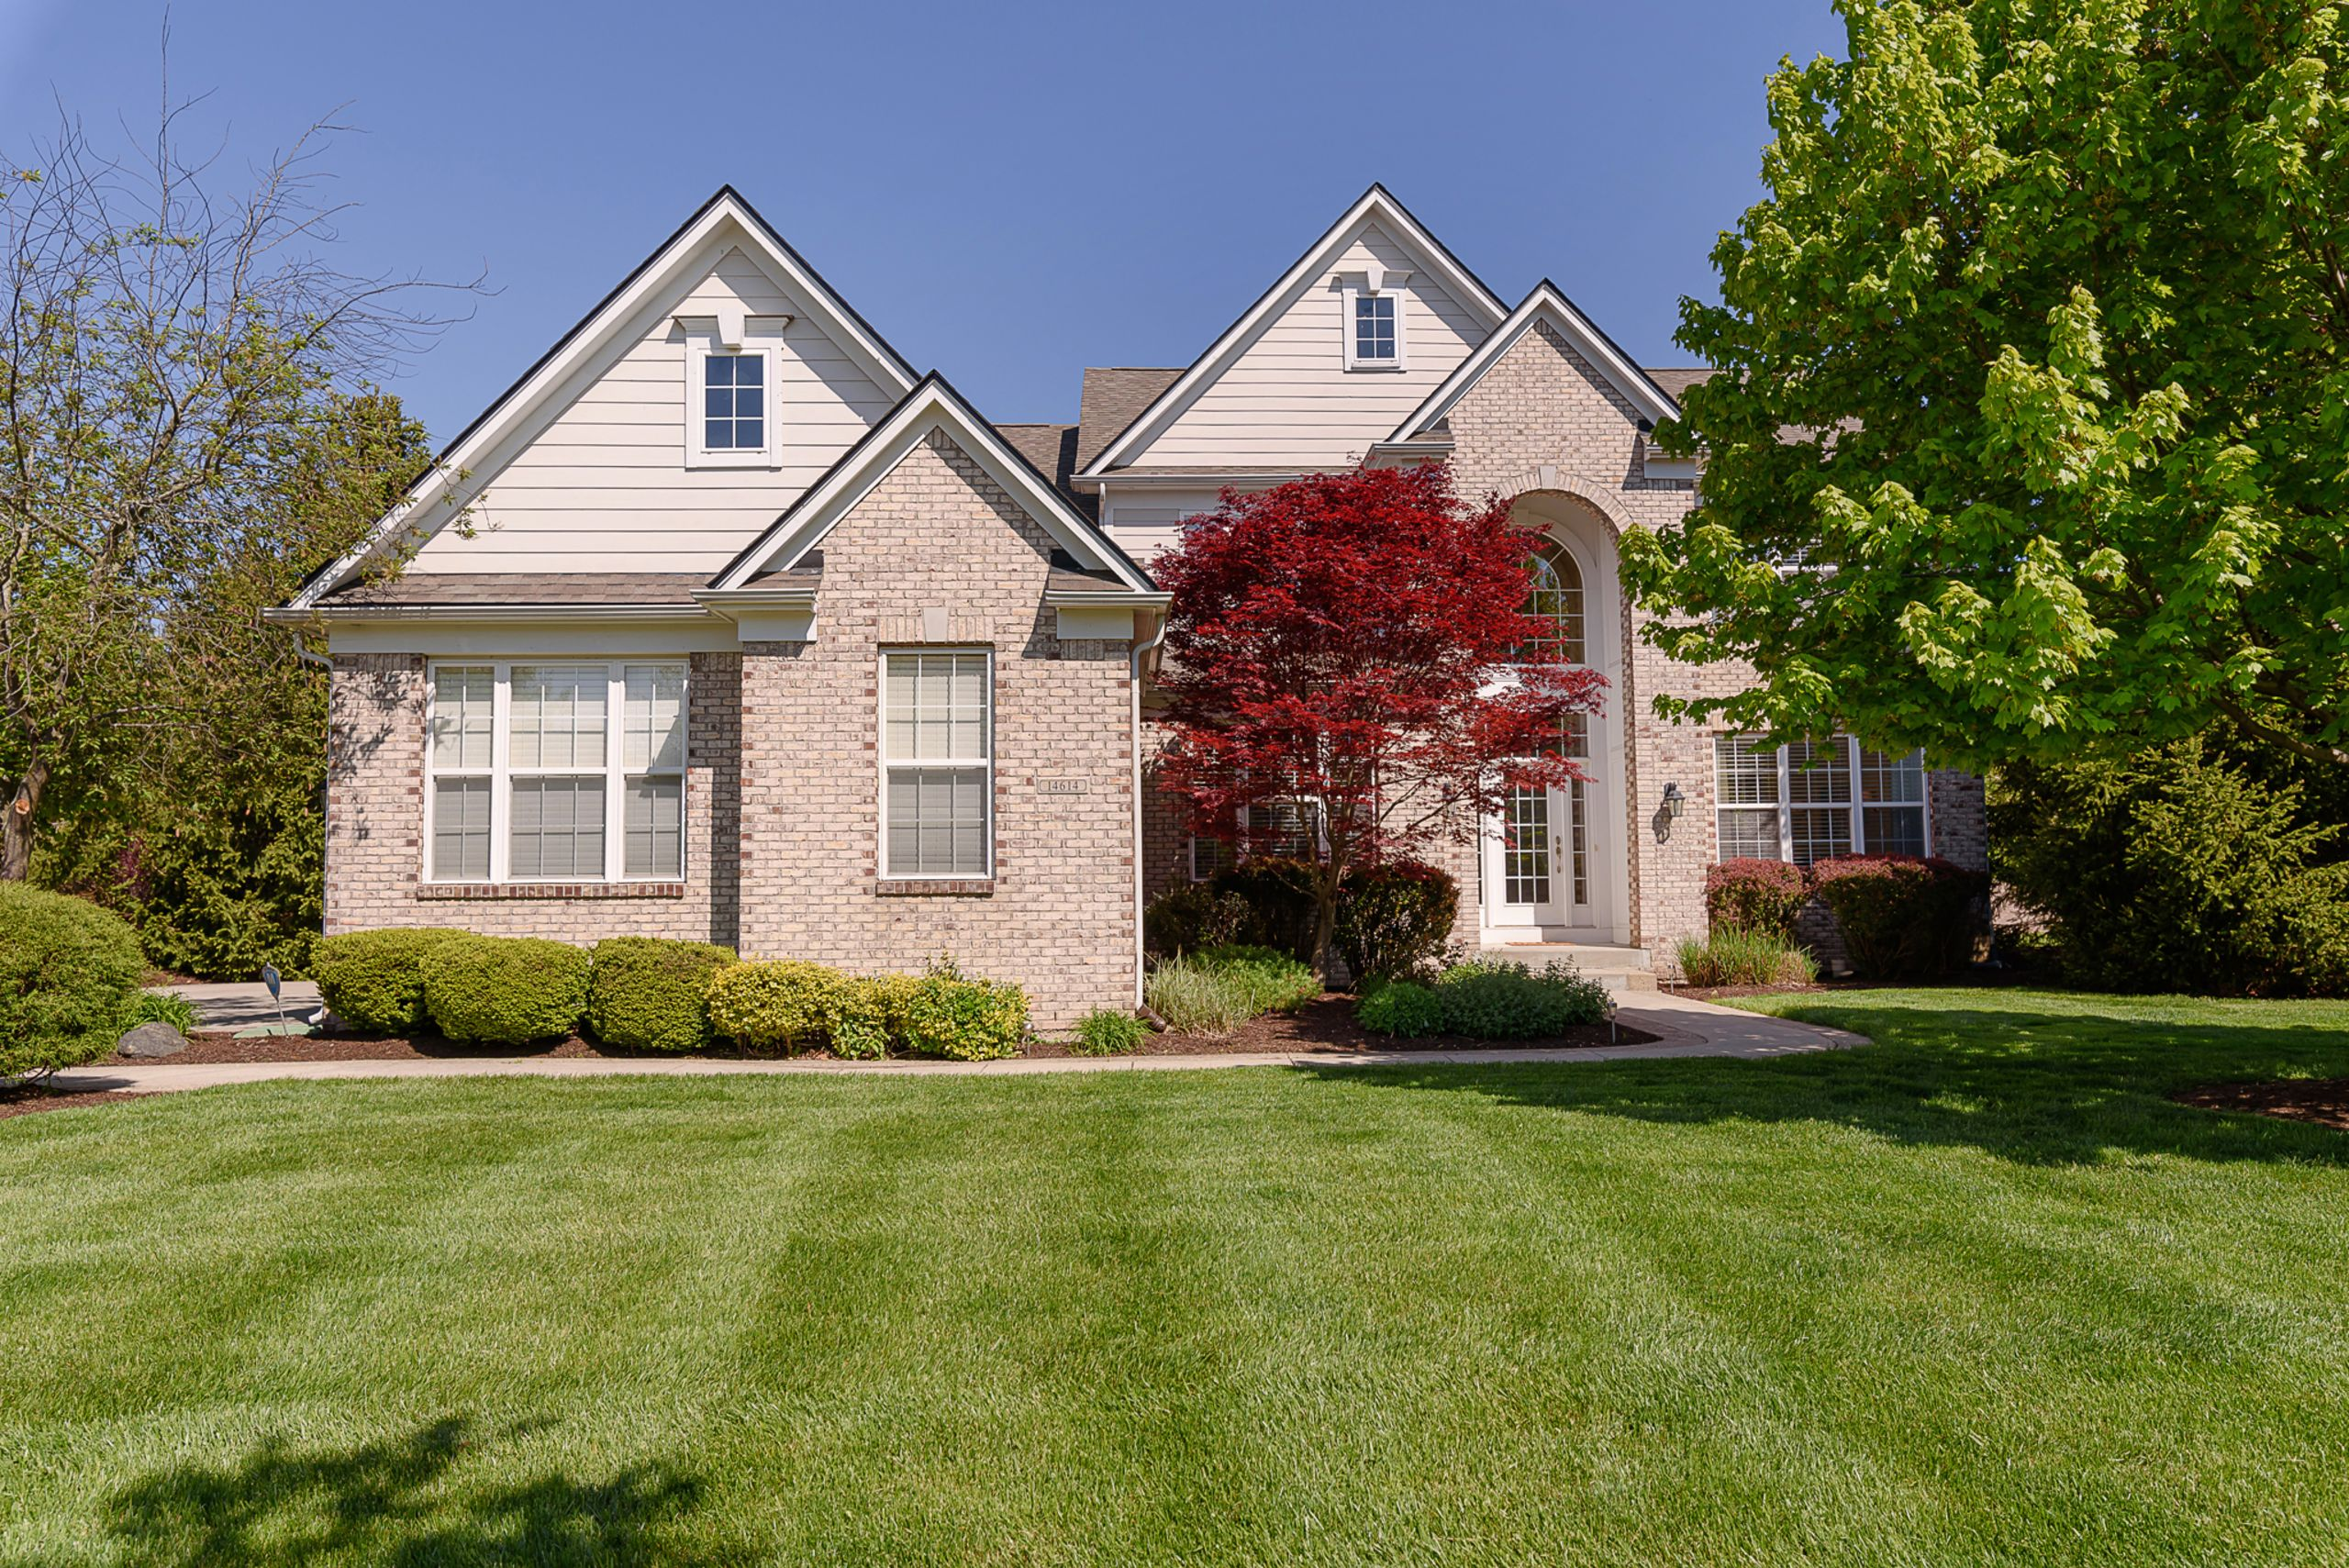 SOLD IN FISHERS (2 DOM, MULTIPLE OFFERS)